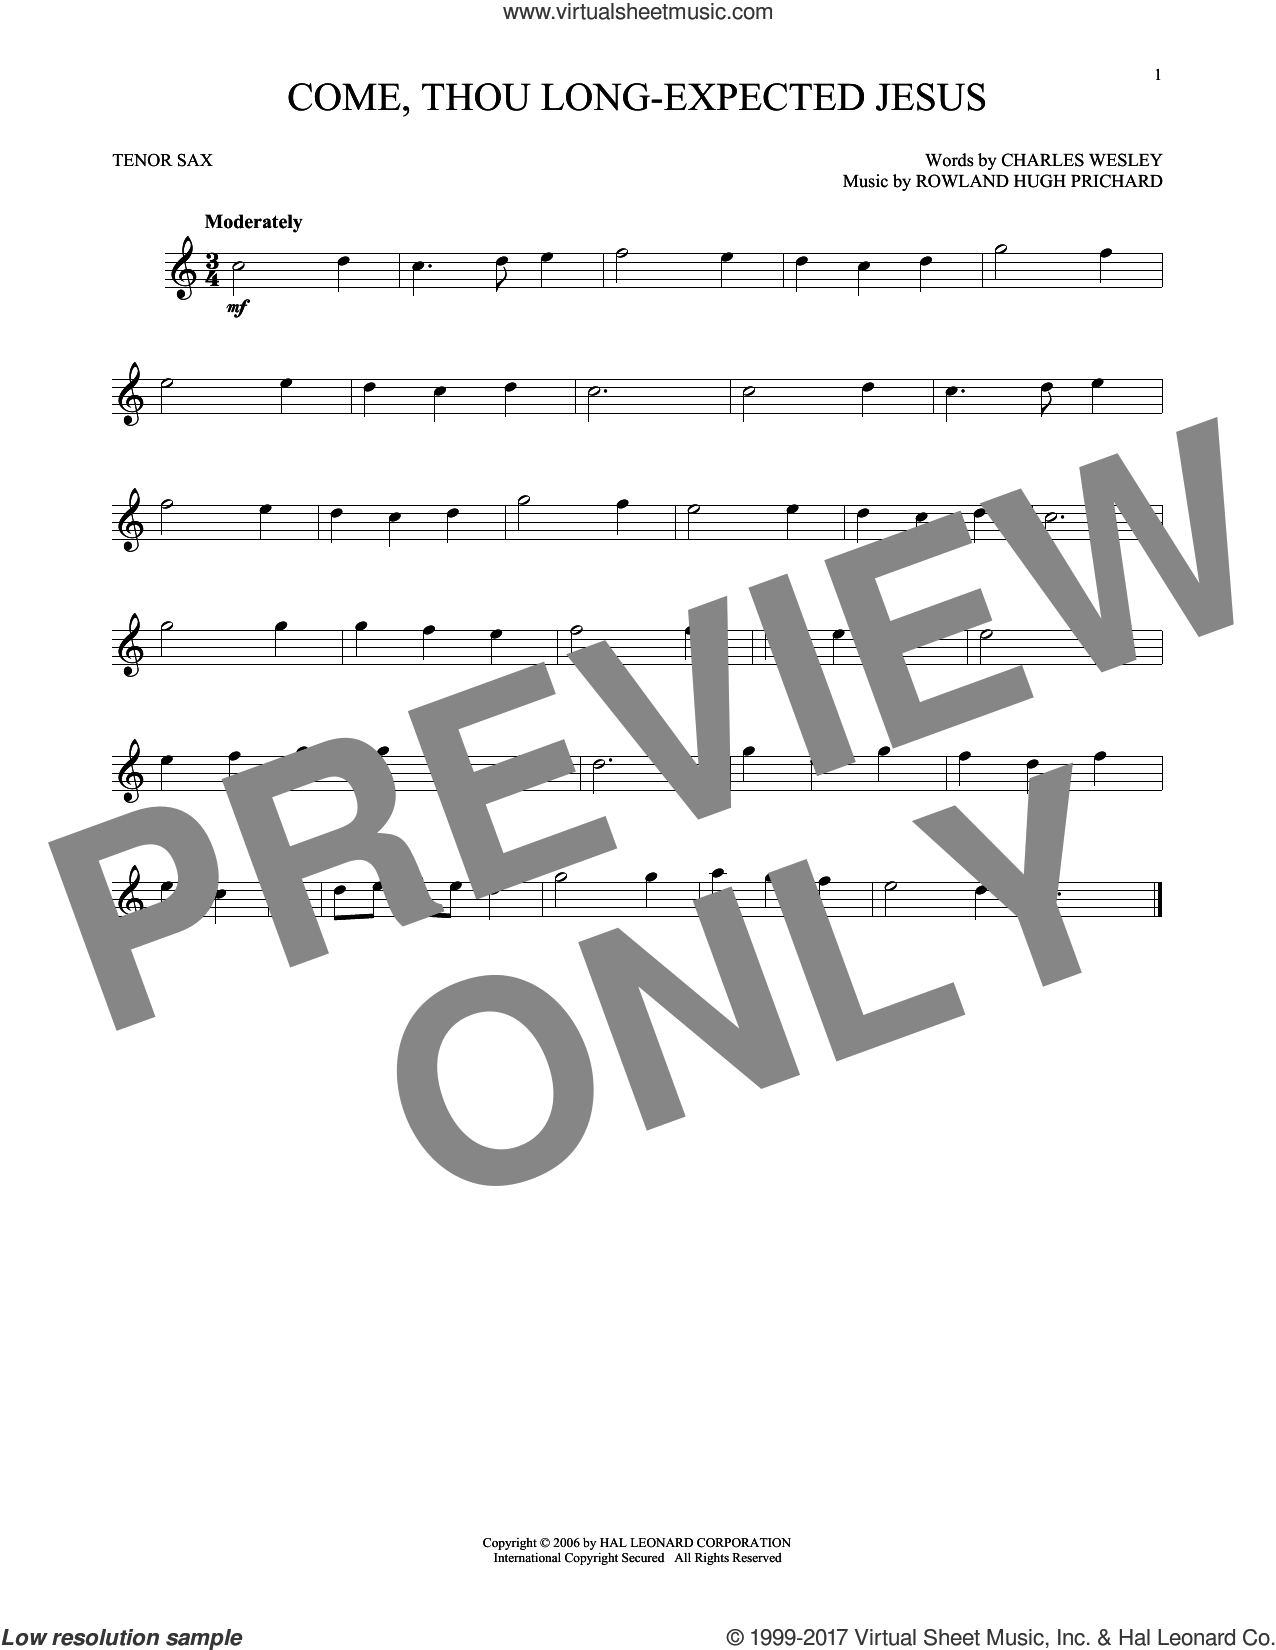 Come, Thou Long-Expected Jesus sheet music for tenor saxophone solo by Charles Wesley and Rowland Prichard, intermediate. Score Image Preview.